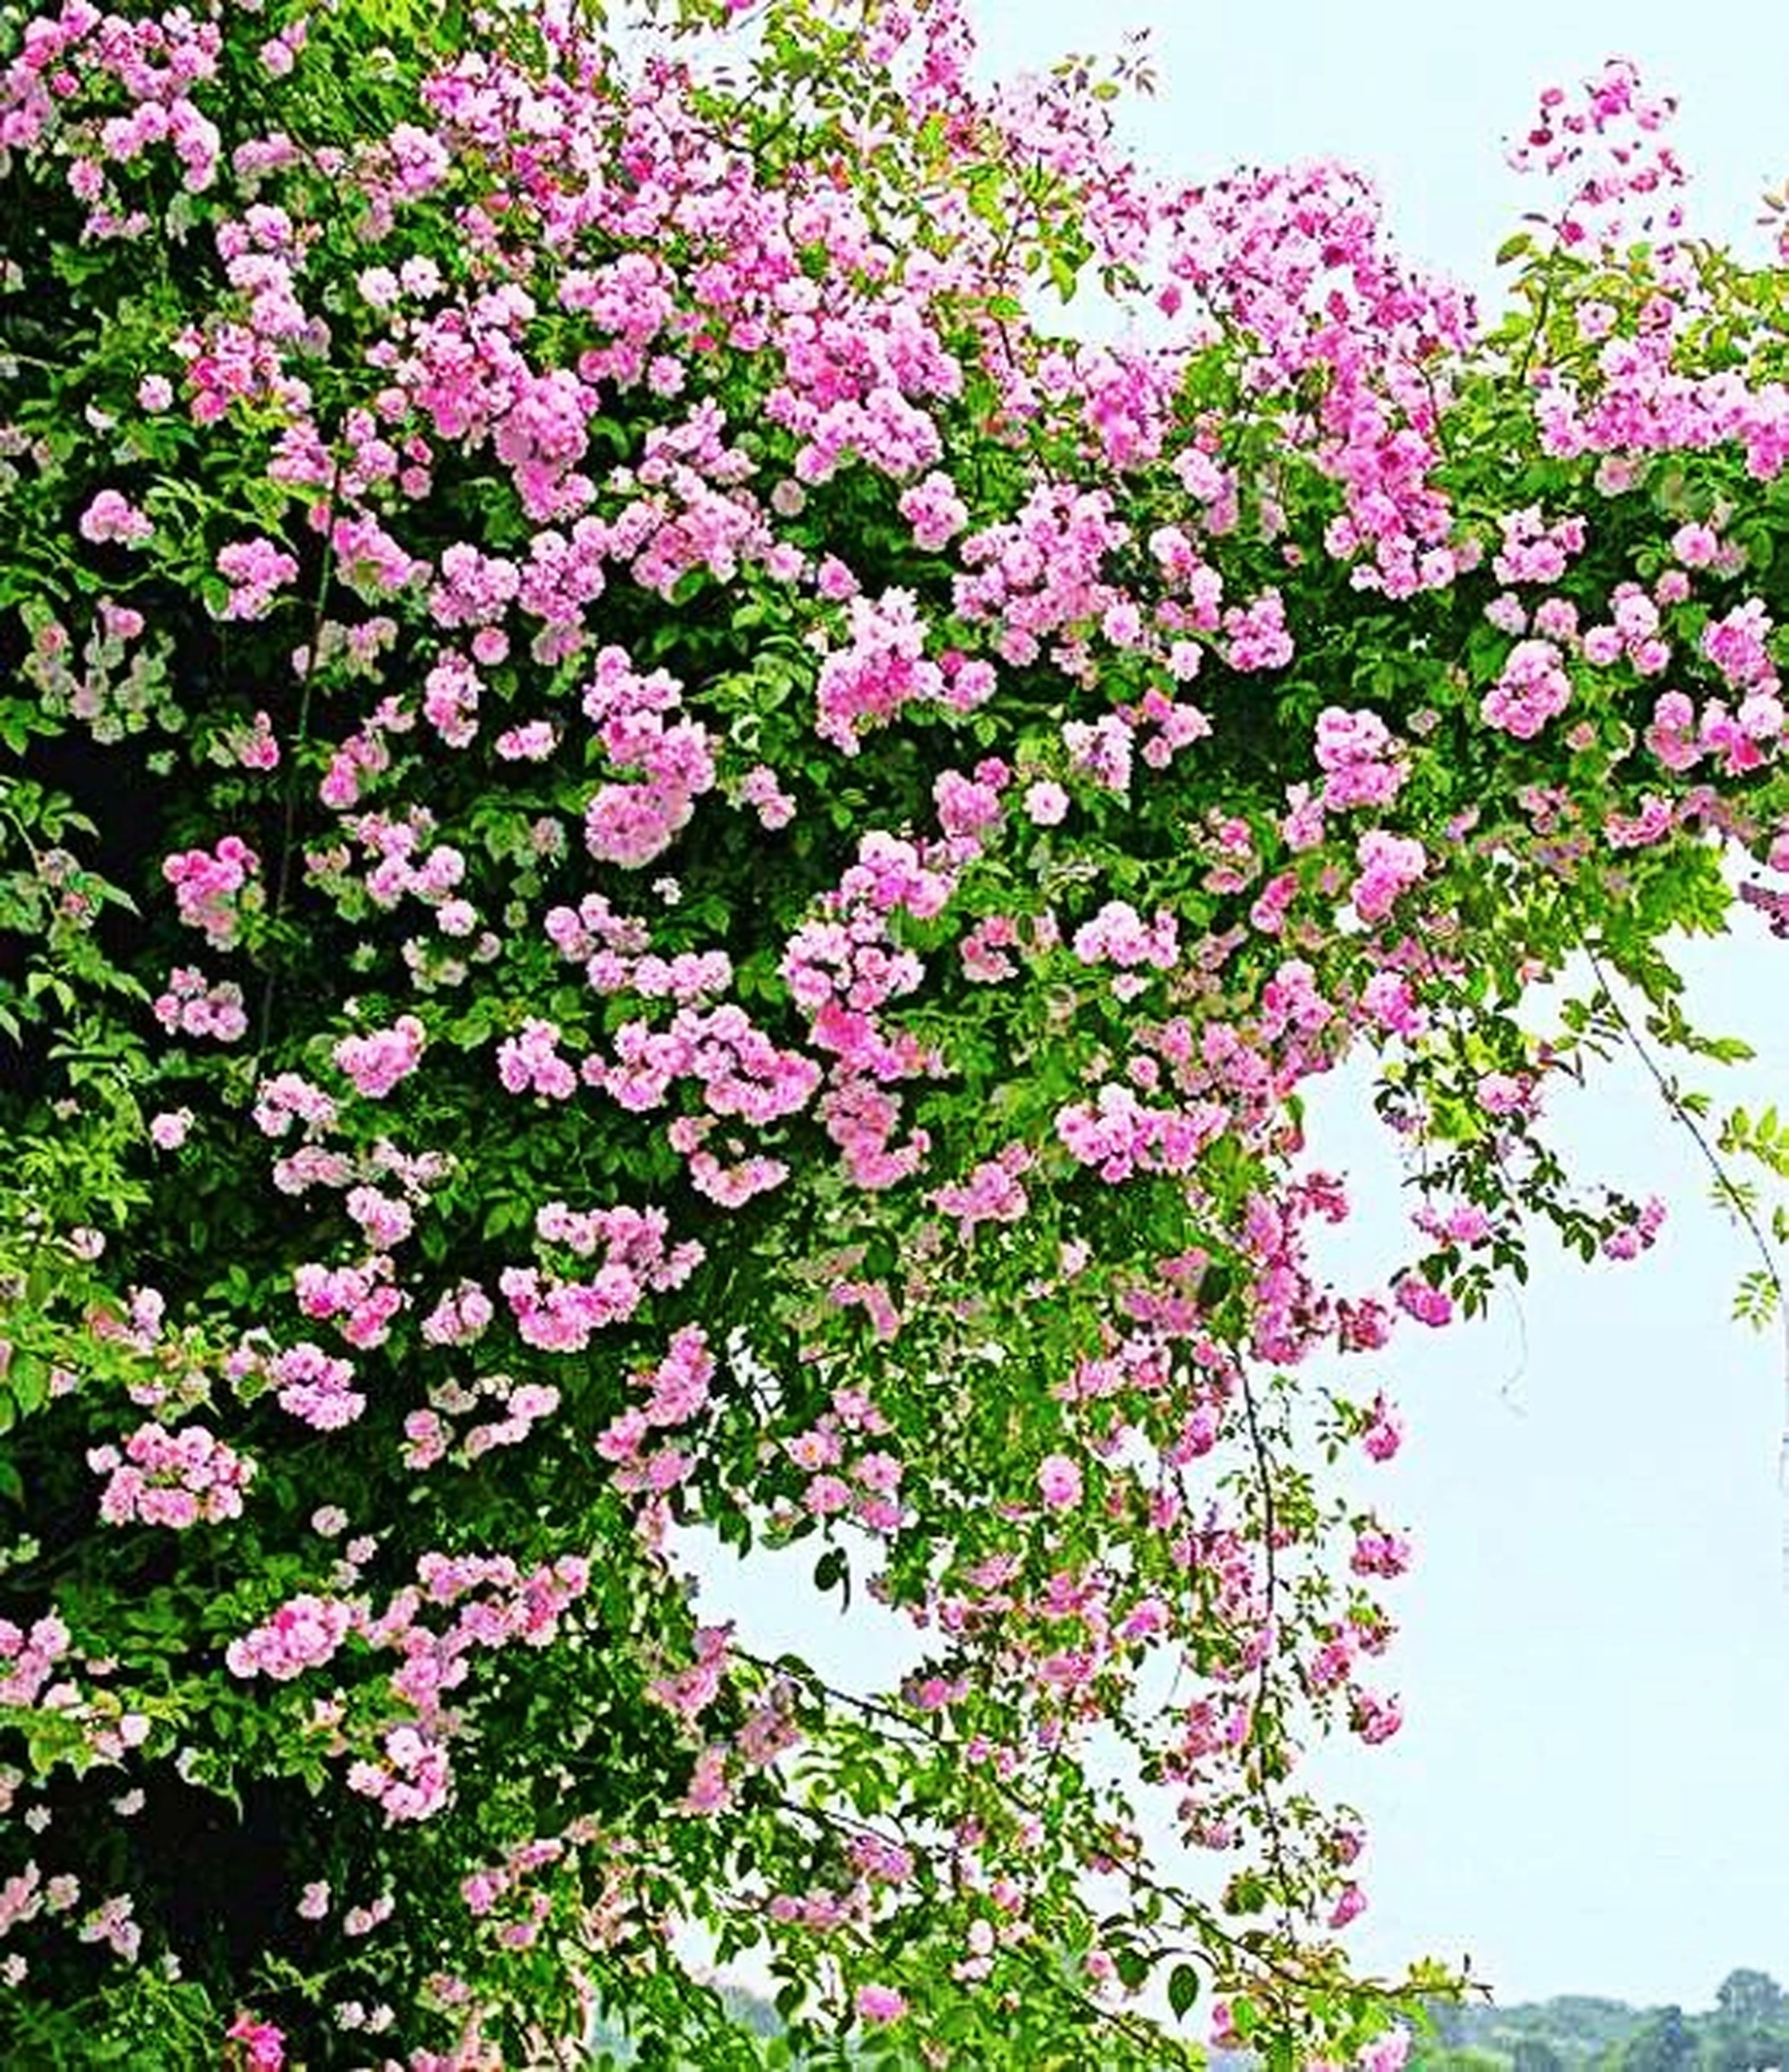 flower, freshness, growth, beauty in nature, fragility, nature, pink color, plant, blooming, tree, in bloom, low angle view, petal, blossom, day, leaf, clear sky, outdoors, no people, sunlight